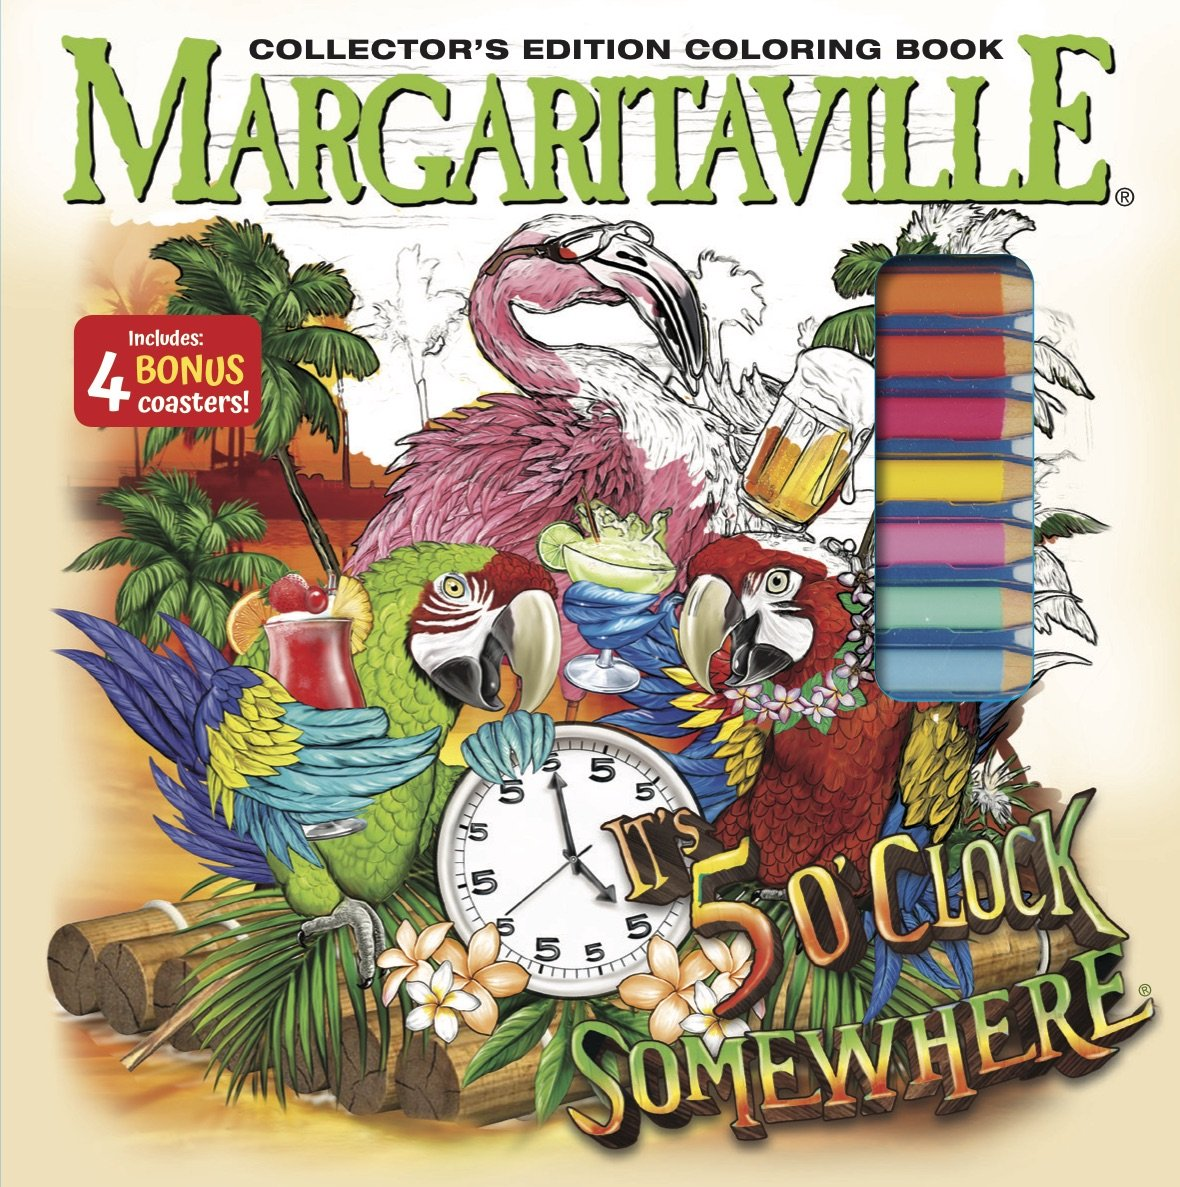 Amazon Margaritaville 5 OClock Somewhere Adult Coloring Book Collectors Edition With 24 Colored Pencils Pencil Sharpener And 4 Drink Coasters